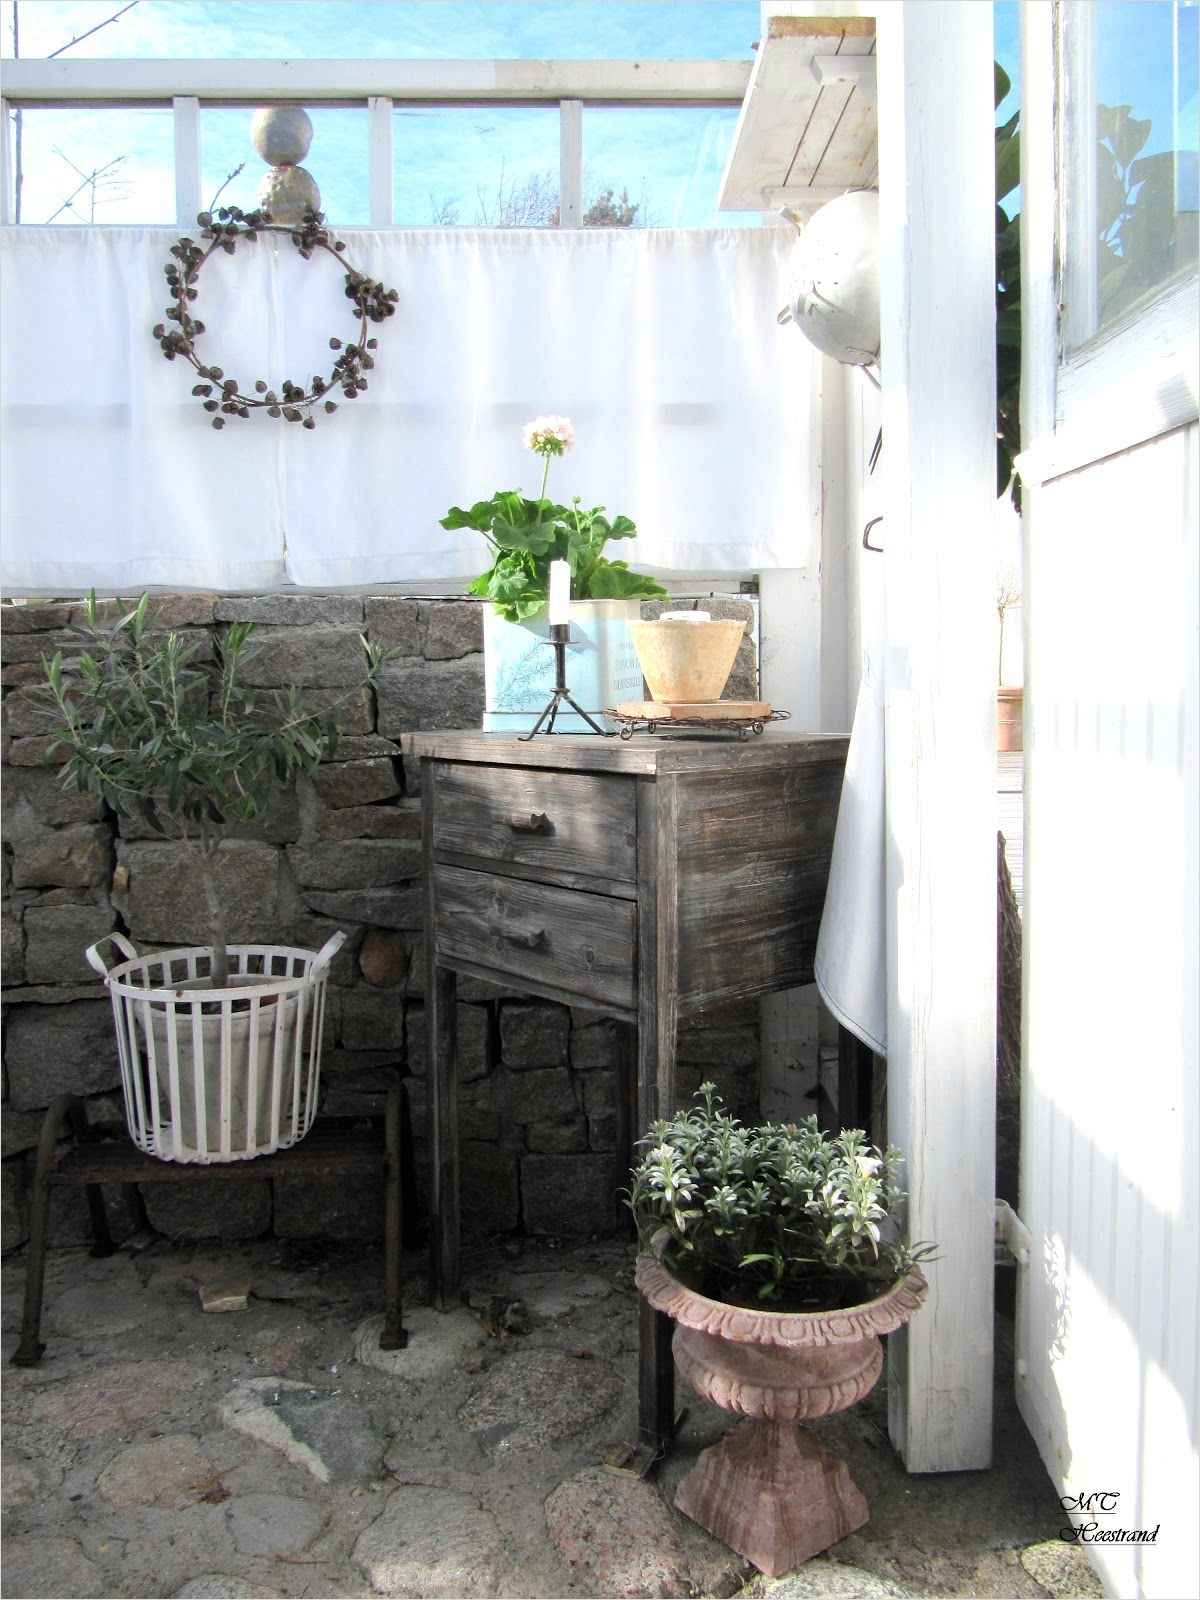 42 Amazing Ideas Country Garden Decor 12 Inside Gazebo Outside Patio Garden Whitewashed Cottage Chippy Shabby Chic French Country Rustic 5